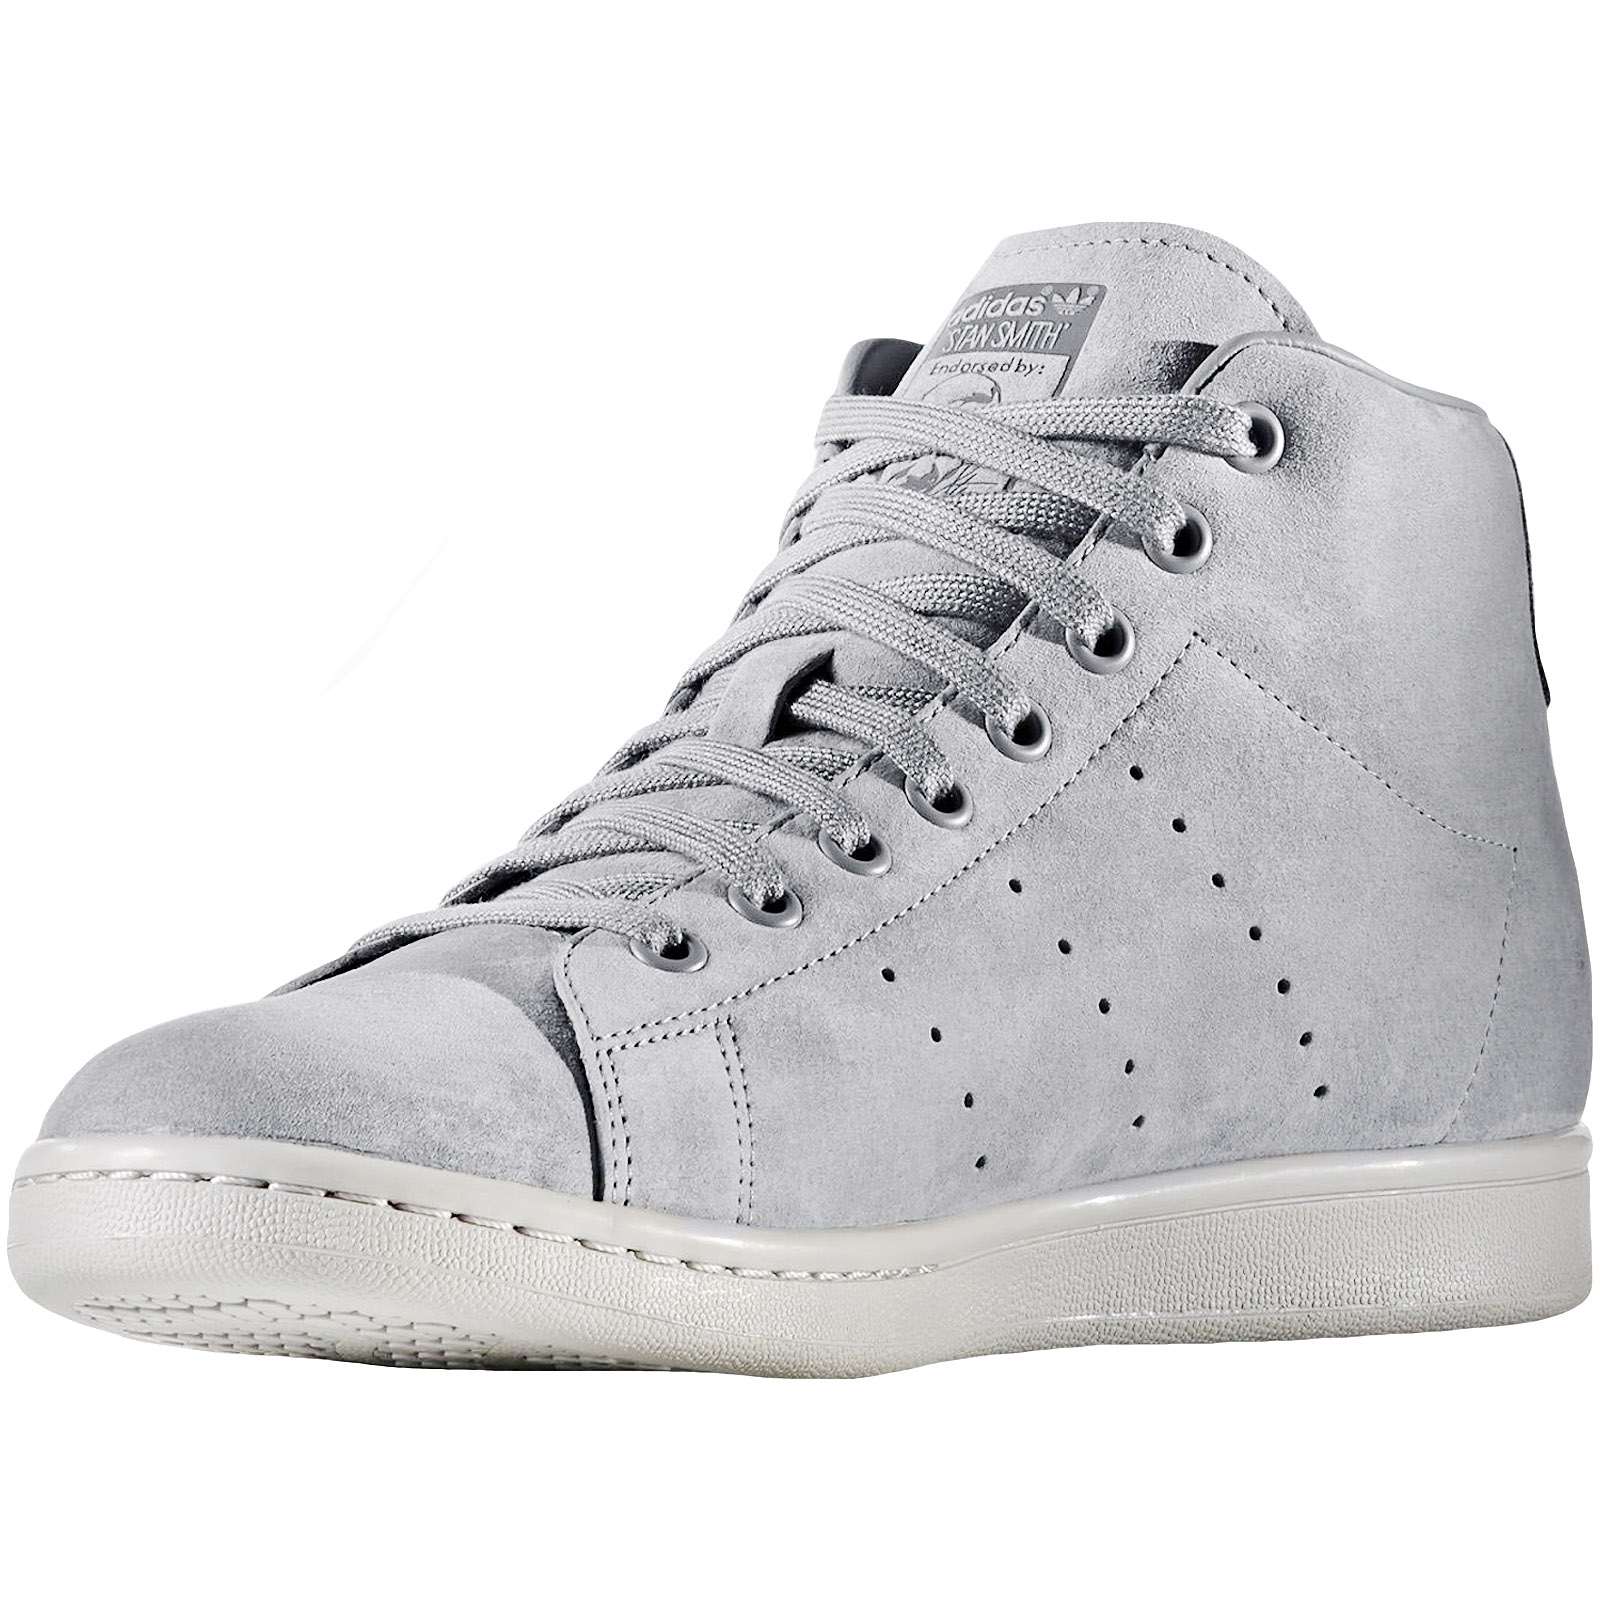 adidas-Originals-Mens-Stan-Smith-Mid-Rise-Casual-Lace-Up-Trainers-Sneakers-Shoes thumbnail 3